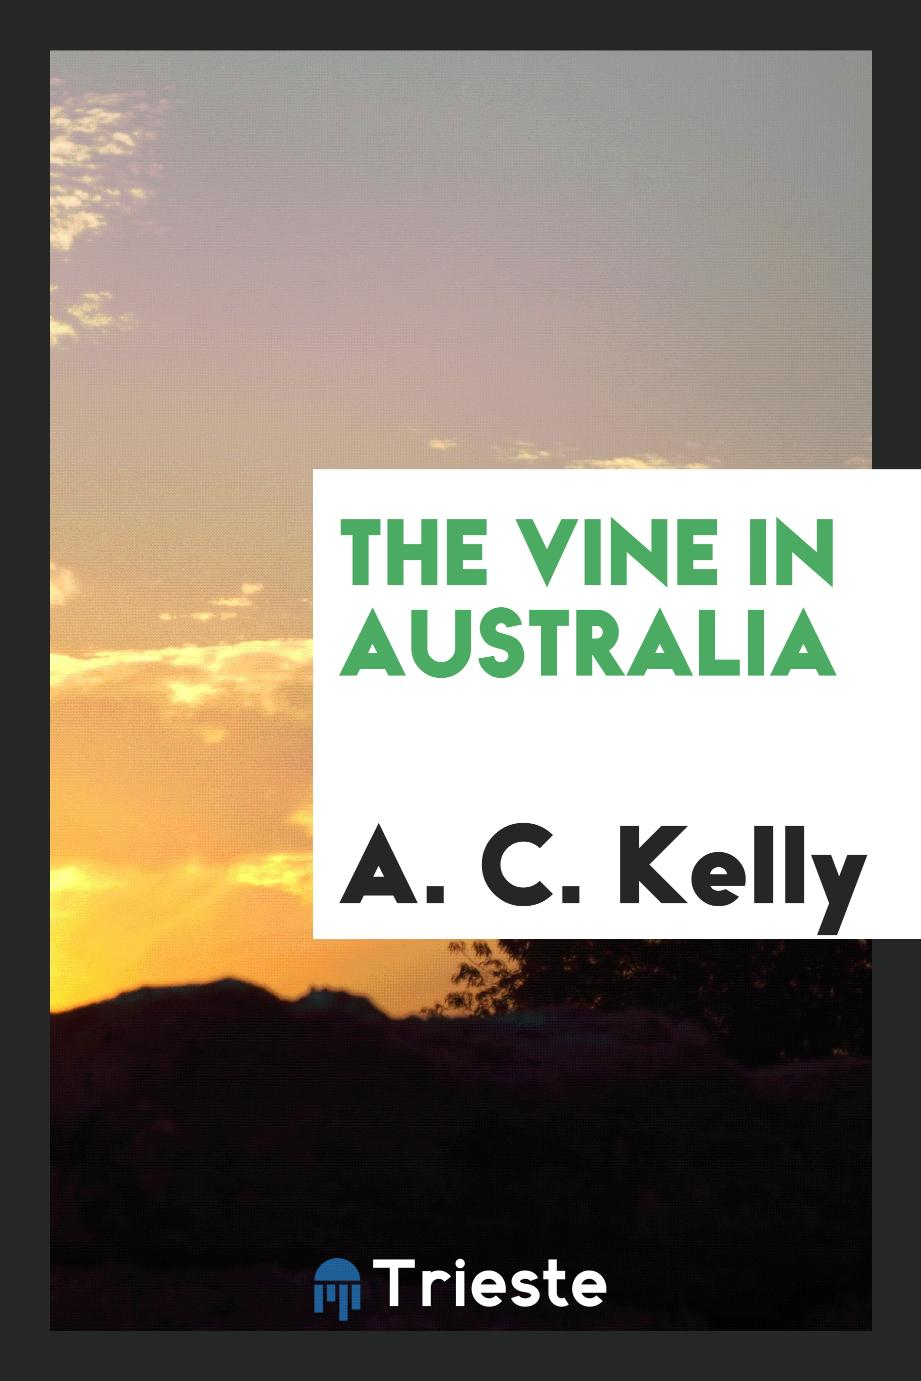 The Vine in Australia